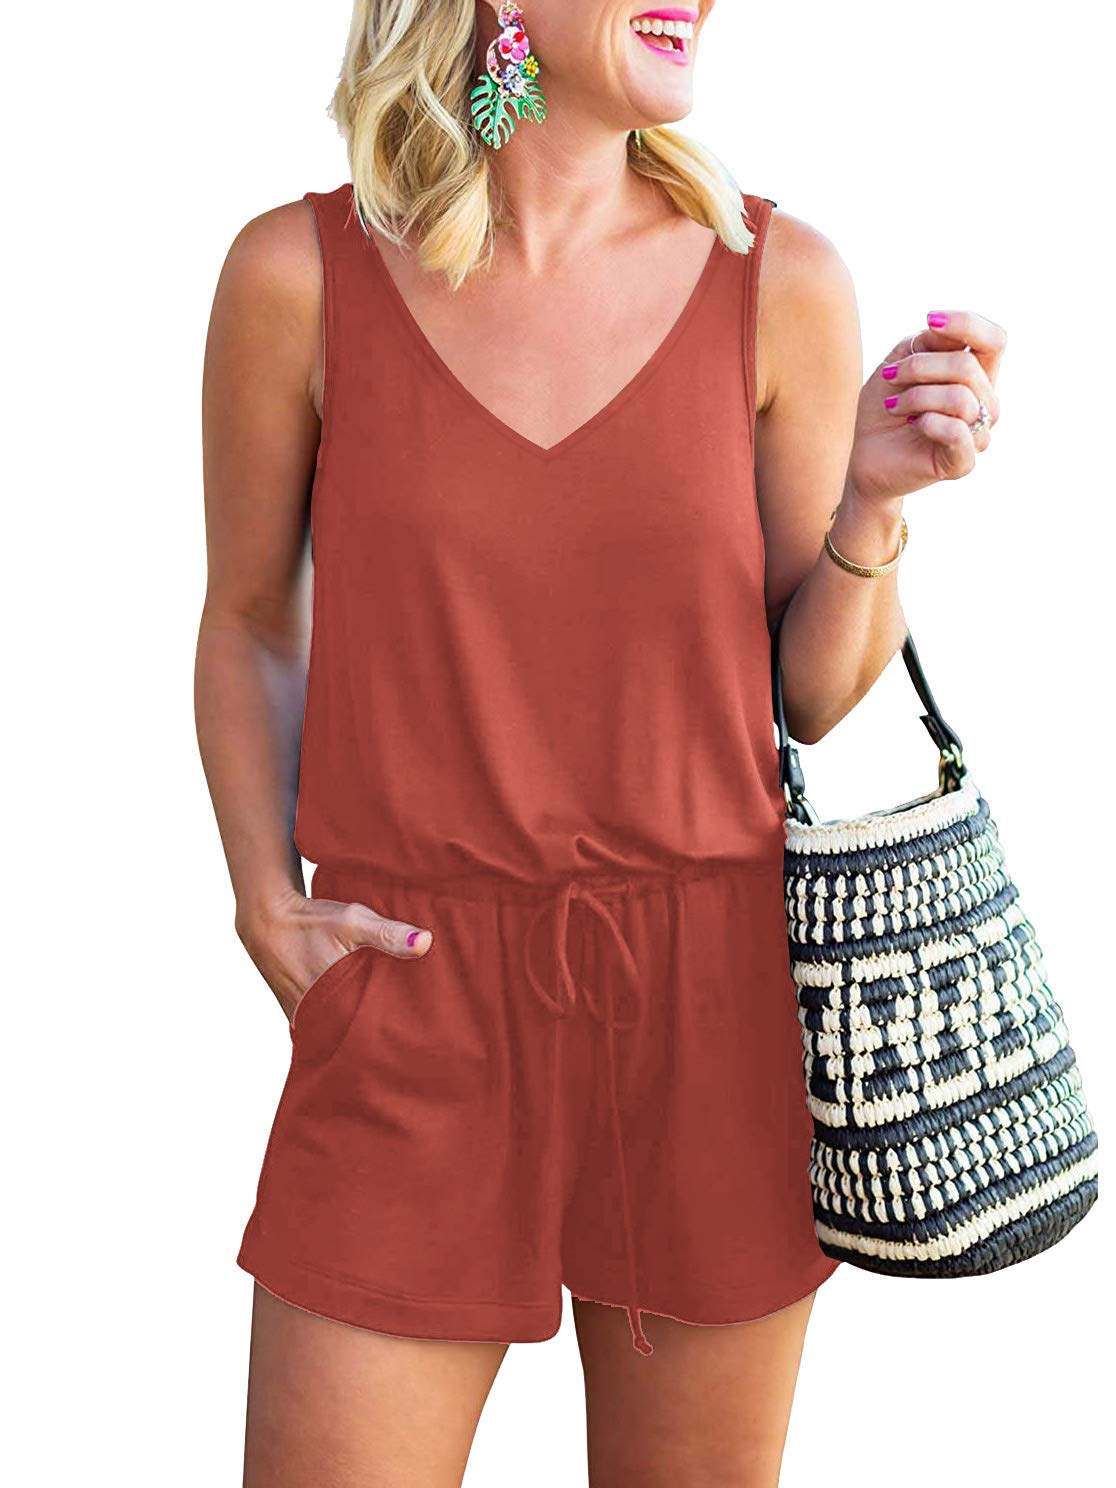 MILLCHIC Women's Summer V Neck Sleeveless Tank Top Spaghetti Strap Drawstring Elastic Waisted Short Jumpsuits Rompers